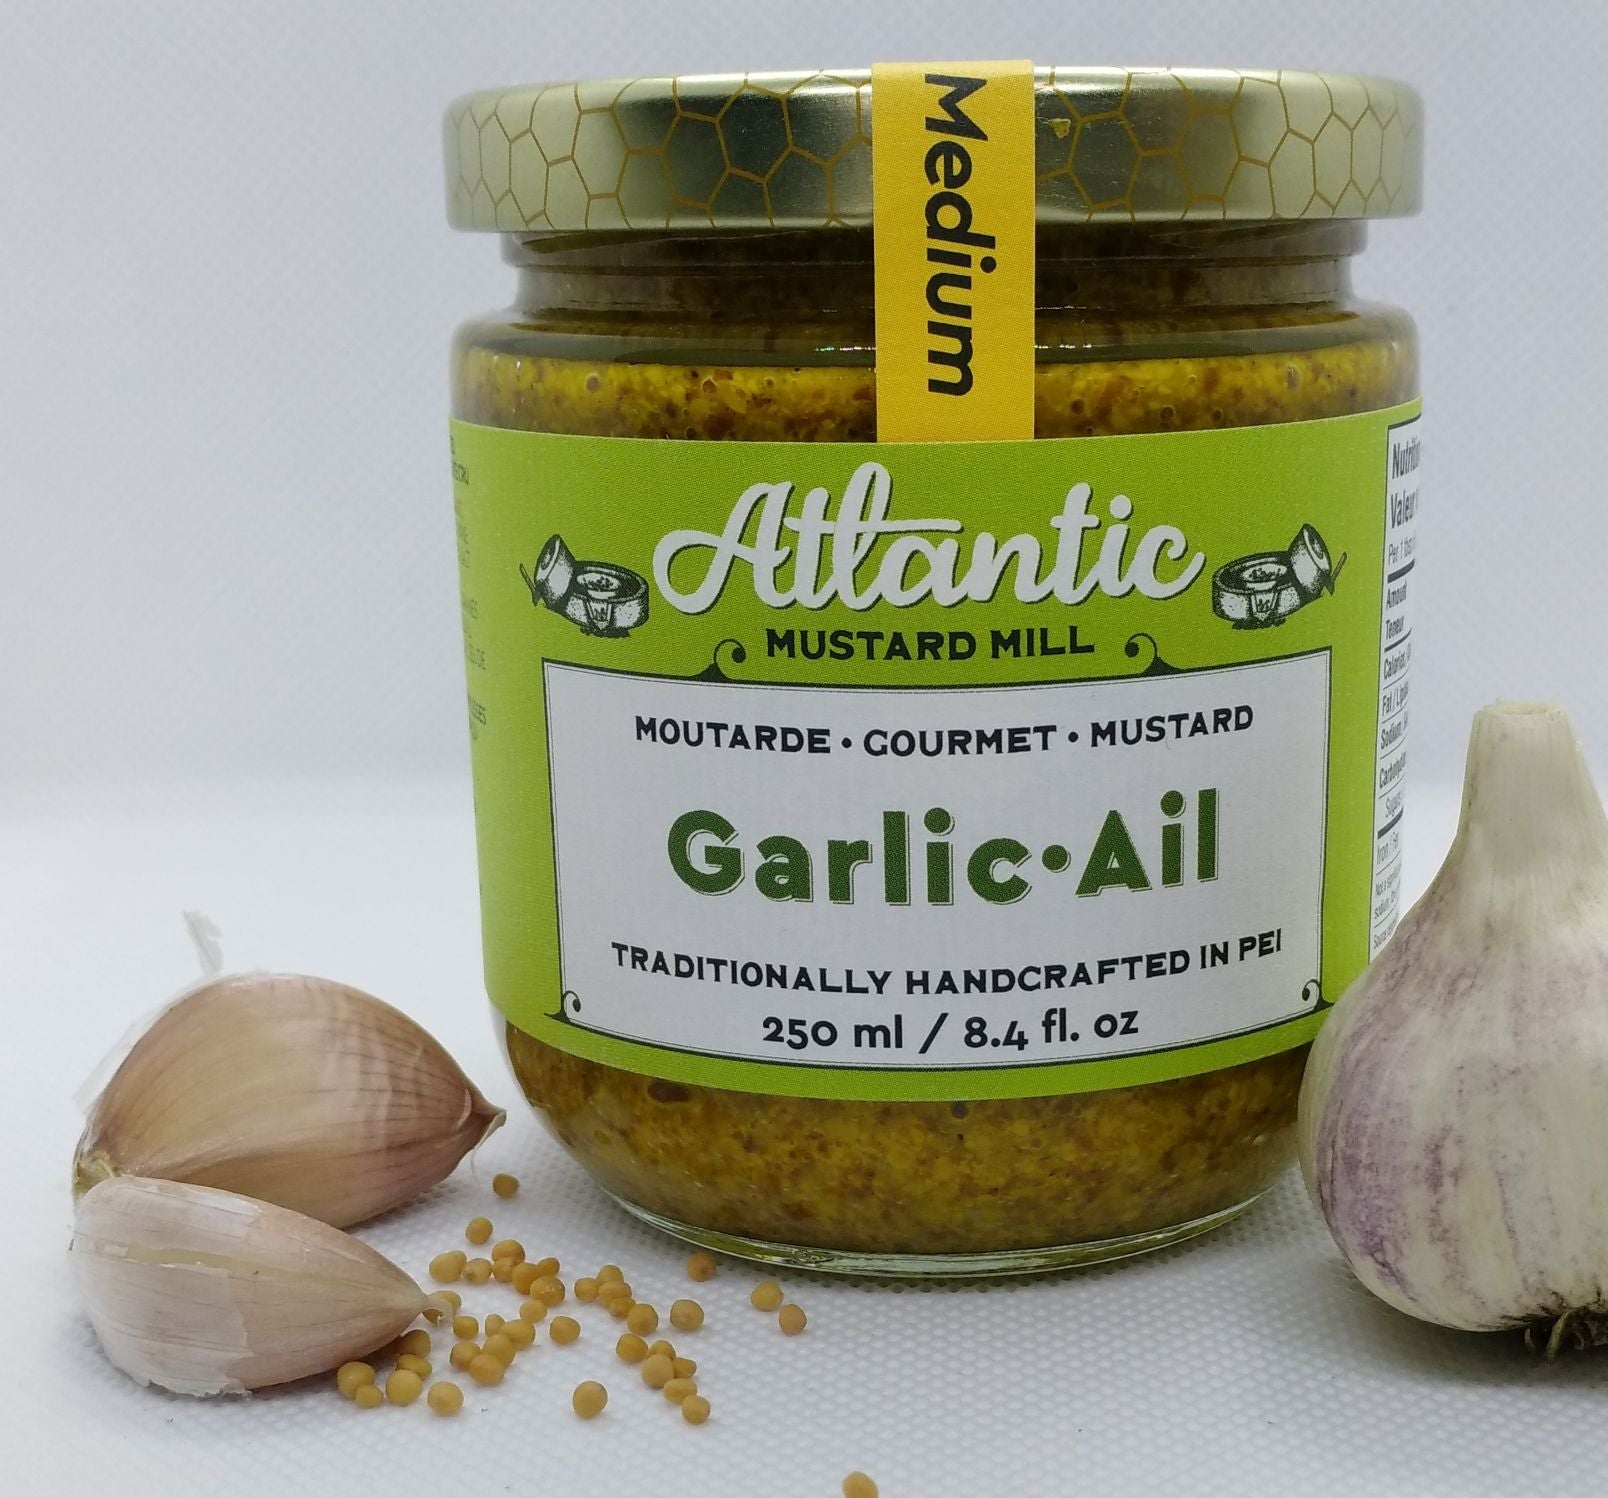 A bigger jar of mustard with a whole garlic and some cloves